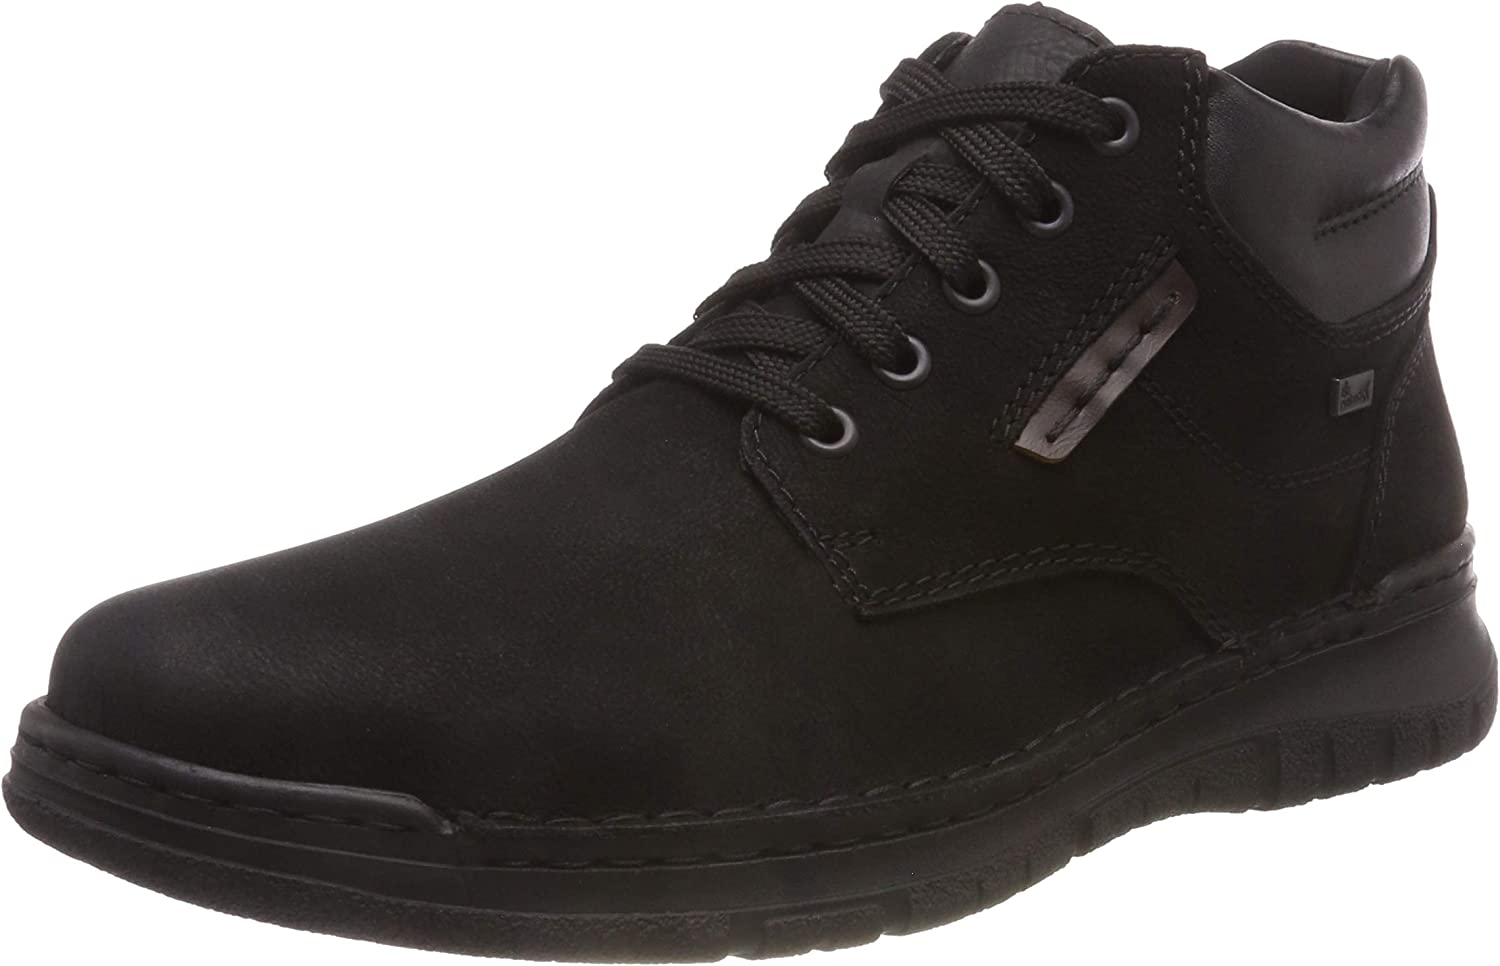 Rieker Men's 絶品 サービス Ankle Classic Boots